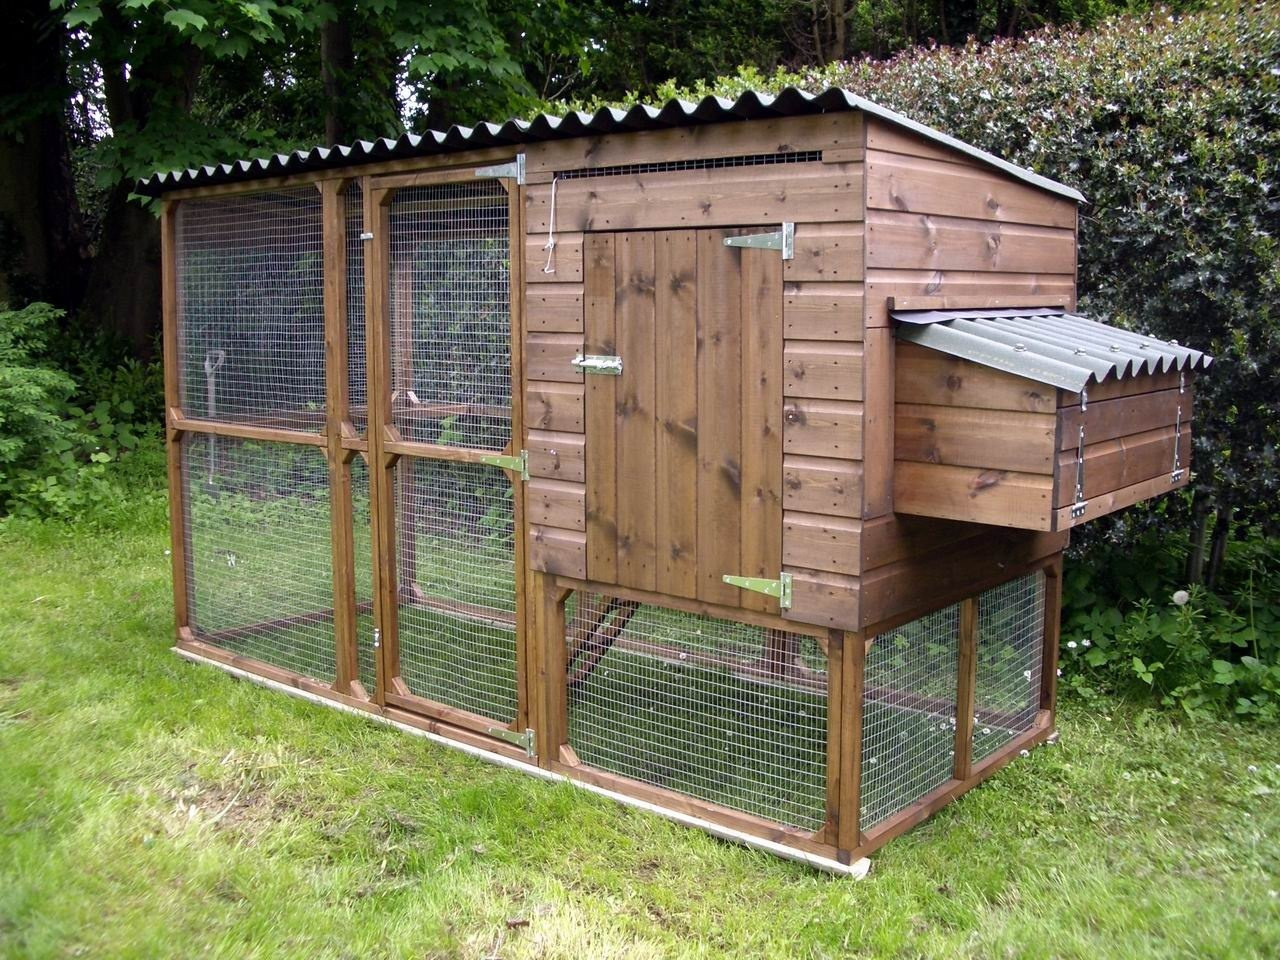 Best ideas about Backyard Chicken Coop . Save or Pin Backyard Chicken Coop Now.